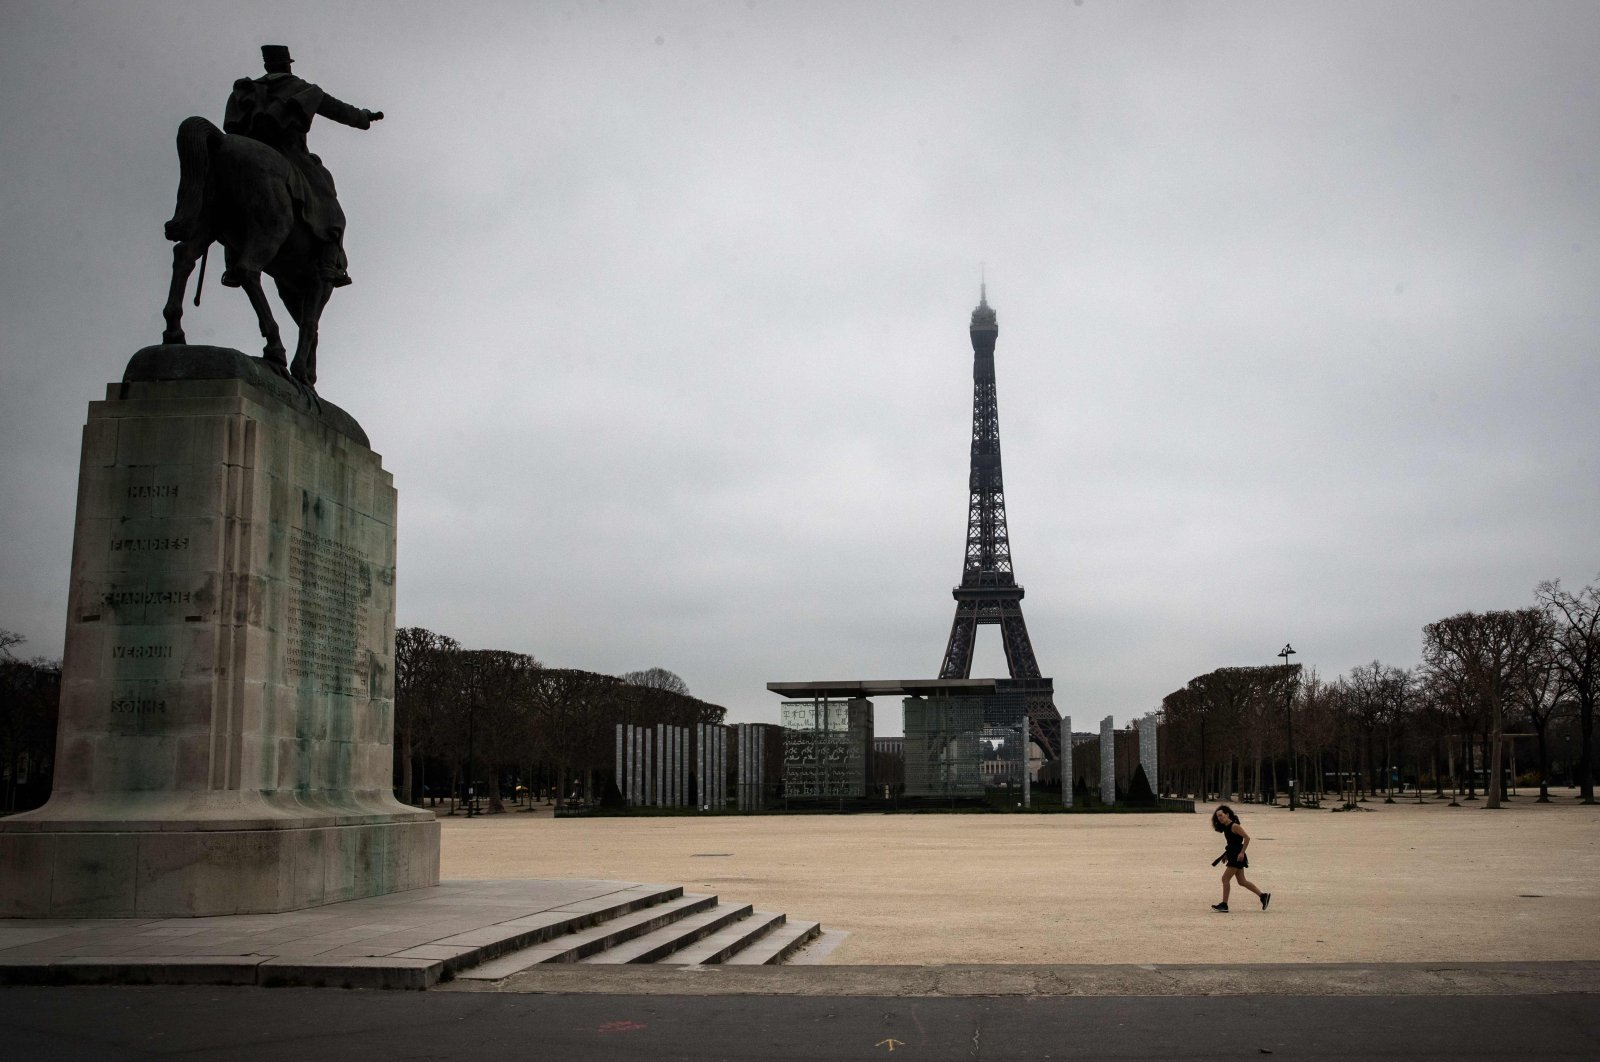 A jogger runs in the Champs de Mars as a strict lockdown comes into in effect in France to stop the spread of COVID-19, Paris, France, March 21, 2020 . (AFP Photo)